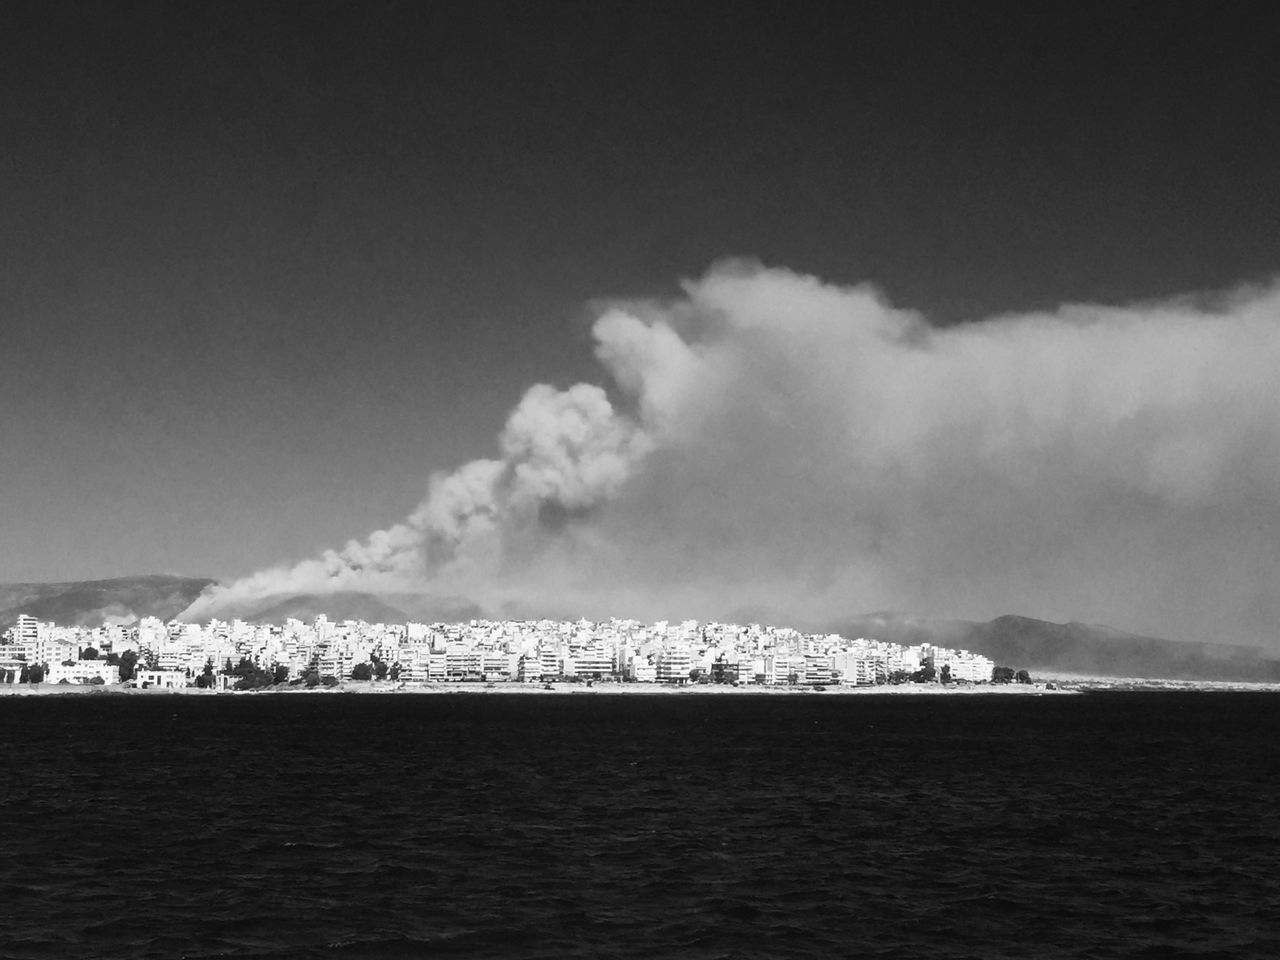 Smoke emitting from city by sea against sky